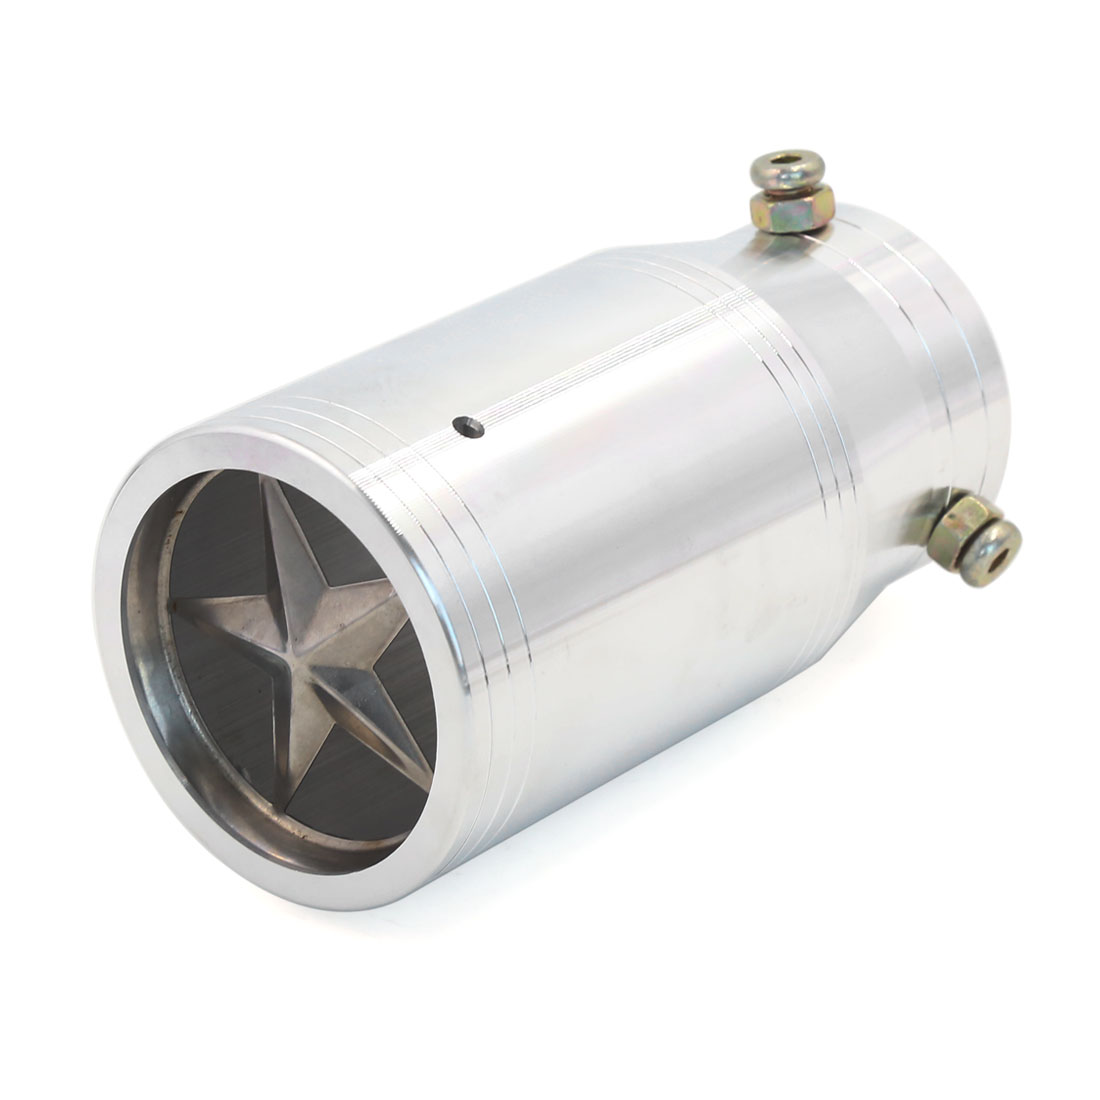 Universal 60mm Inlet Star Decor Style Outlet Car Rear Exhaust Pipe Muffler Tip